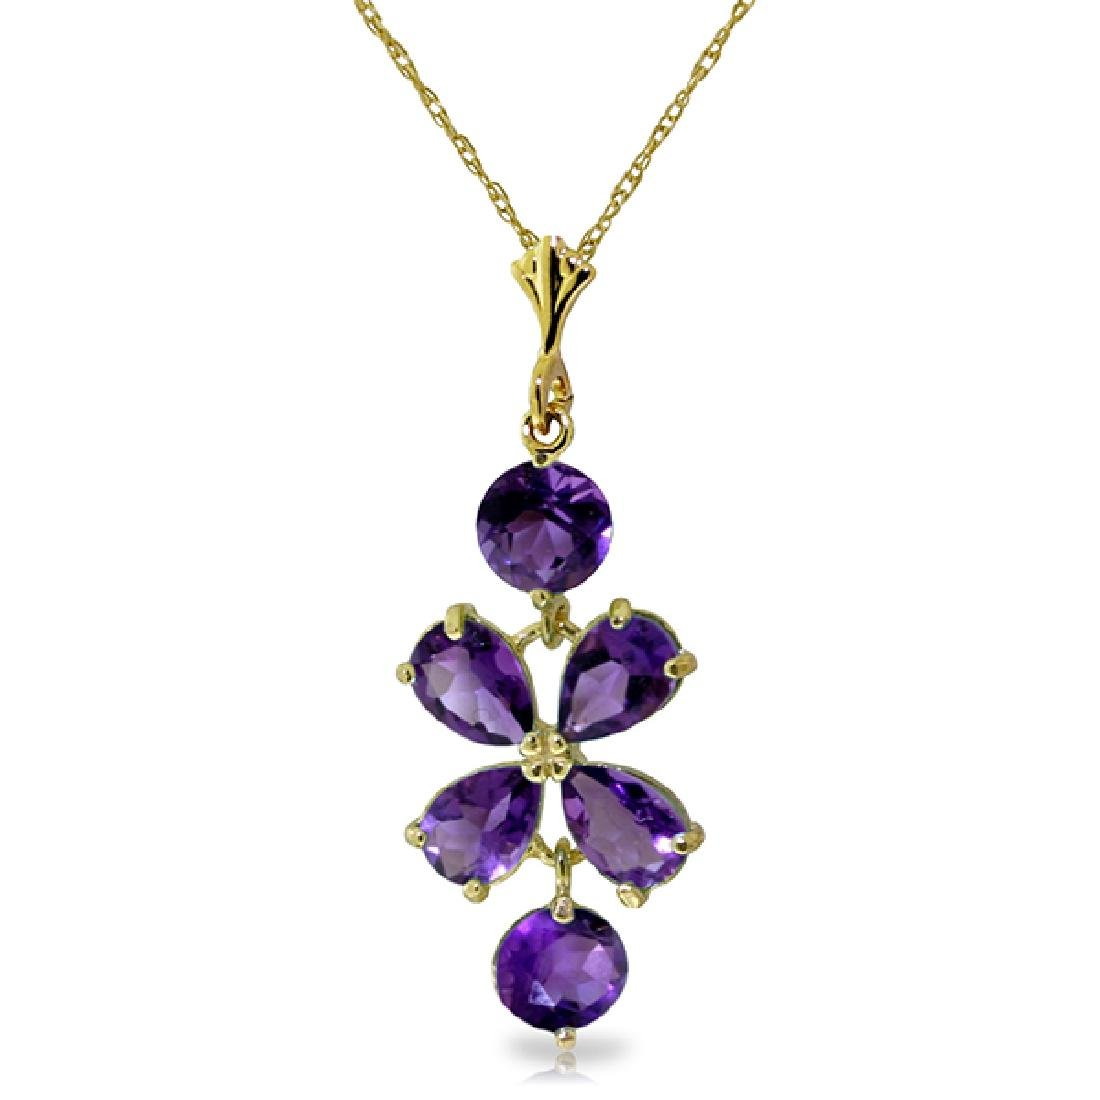 Genuine 3.15 ctw Amethyst Necklace Jewelry 14KT Yellow